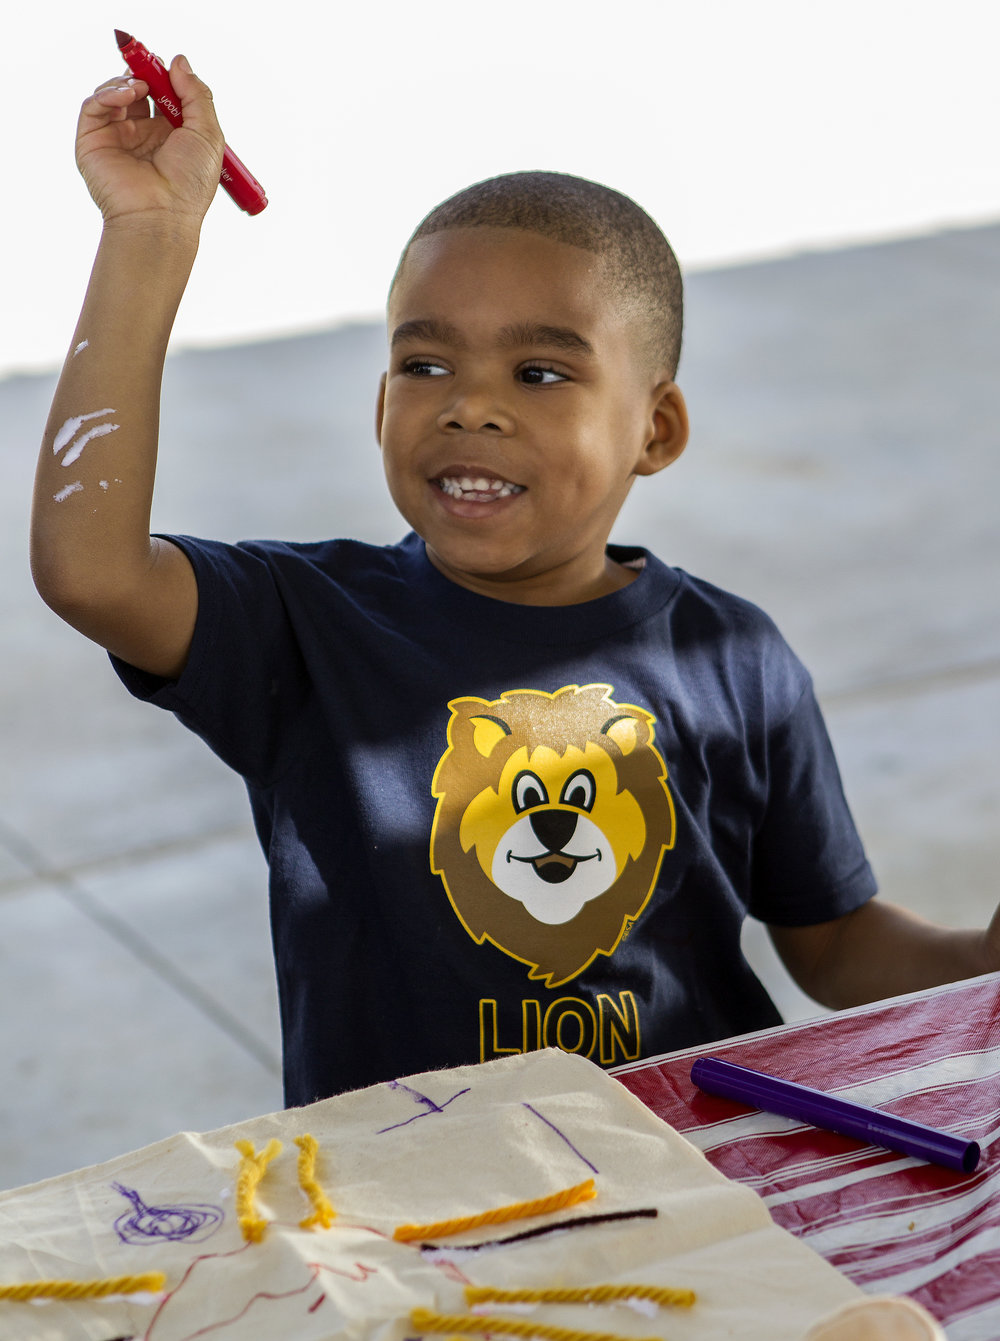 Lion is an expanded pilot program for Cub Scouts. - Answer the questions and Include your info to be a trained Lion leader.